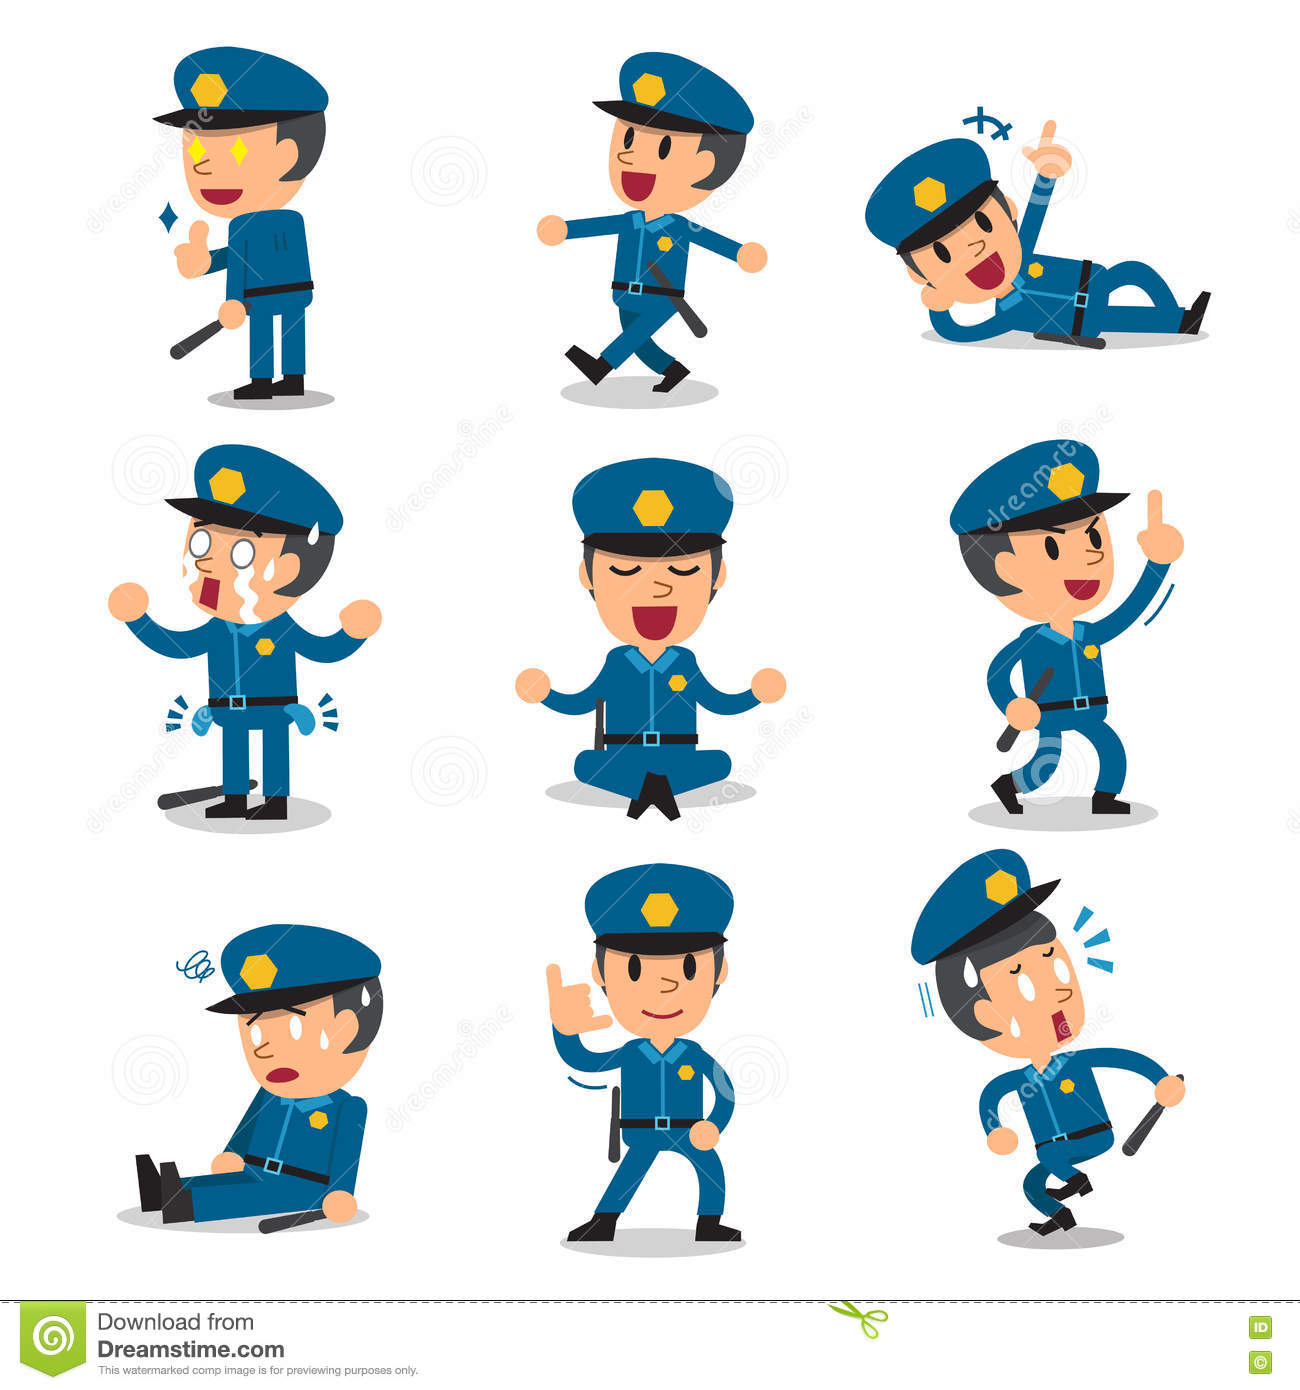 Cartoon Character Design Vector : Cartoon policeman character poses vector